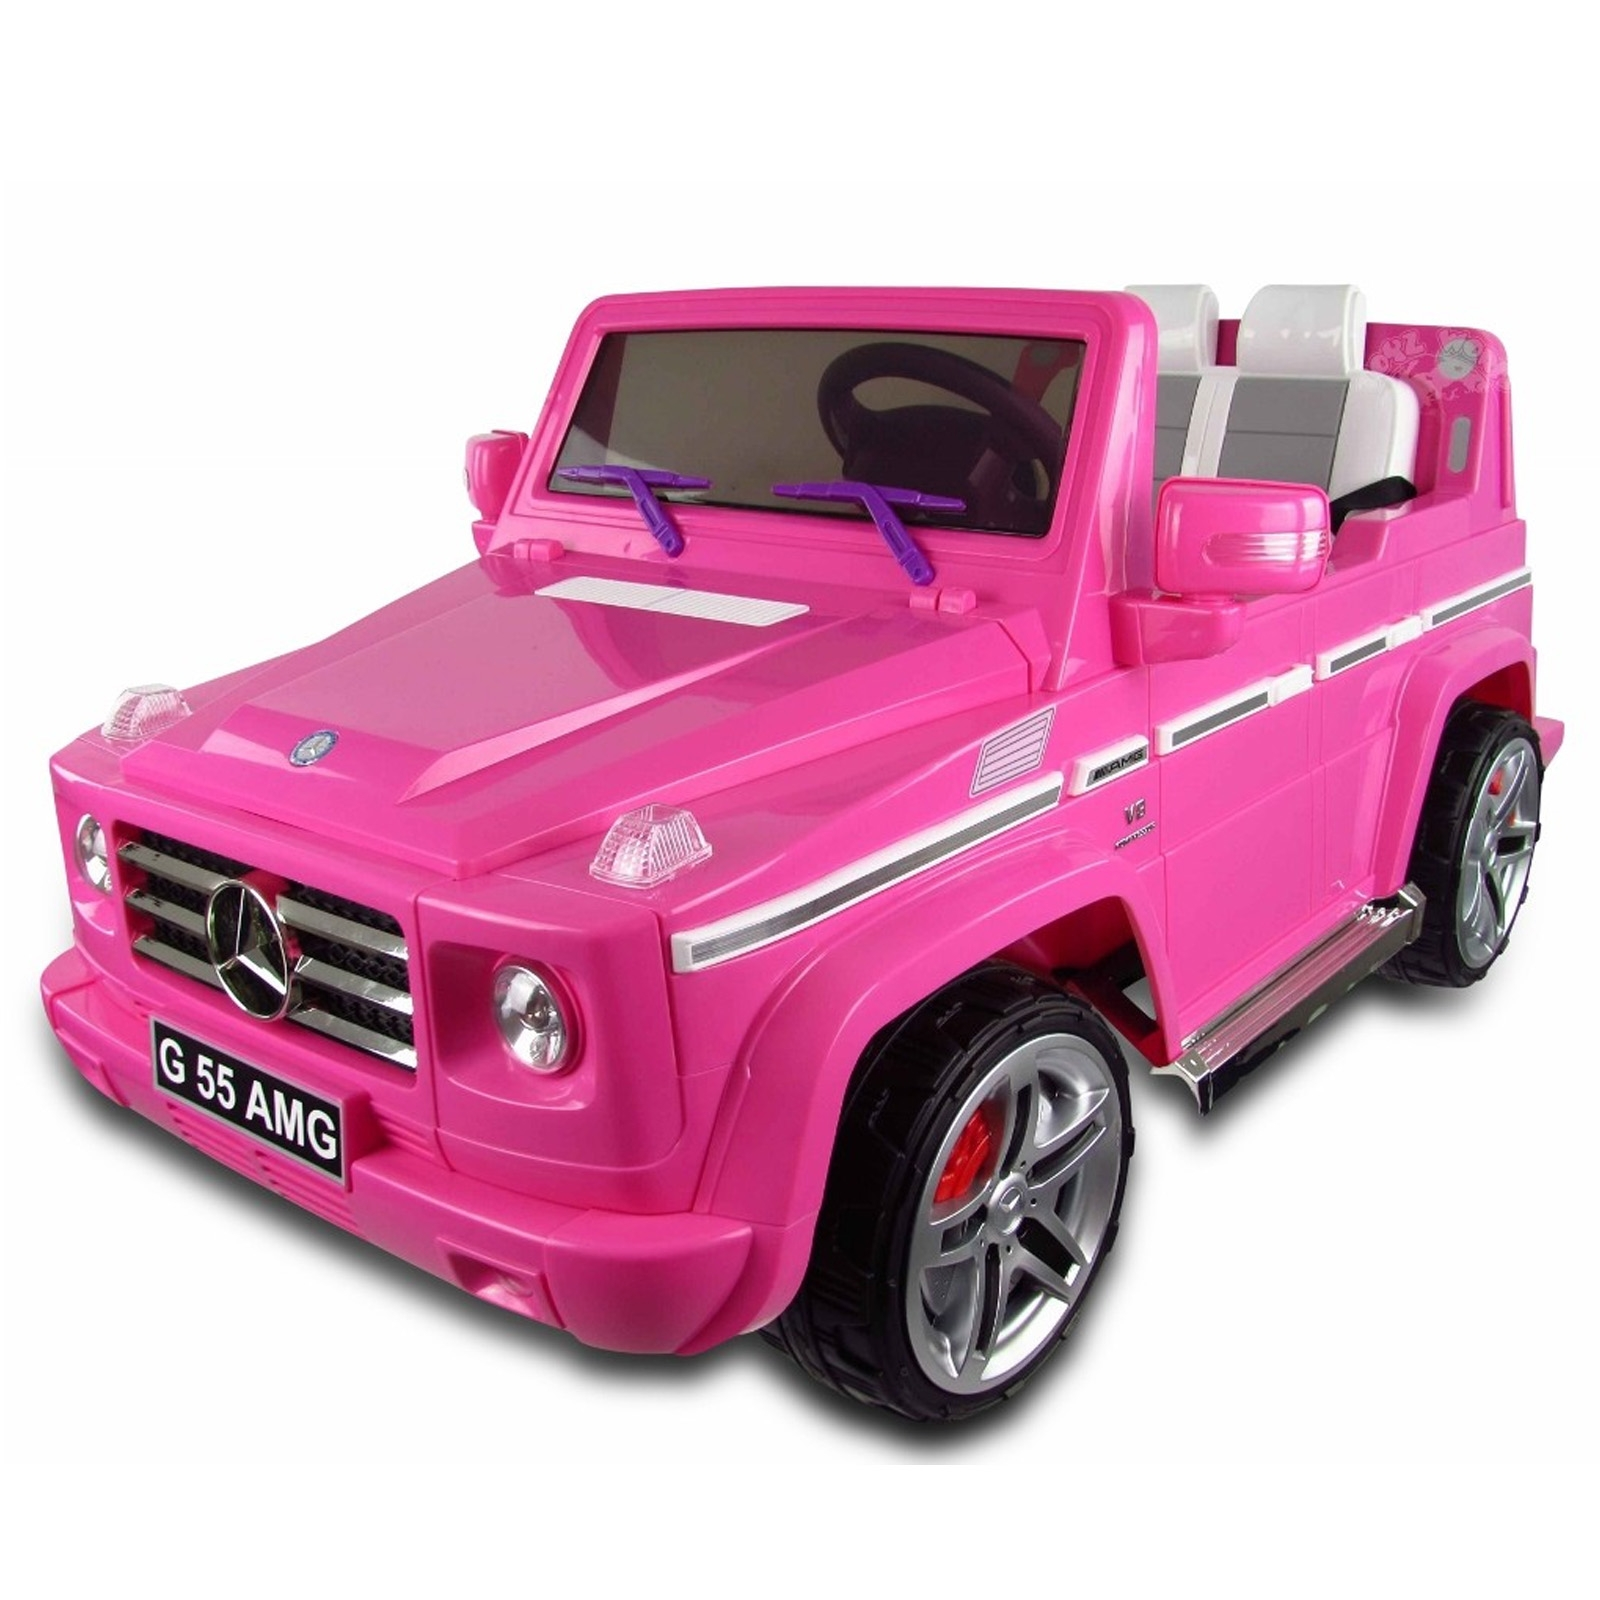 Mercedes Benz G55 12V Battery Power Ride On Car for Kids - Pink